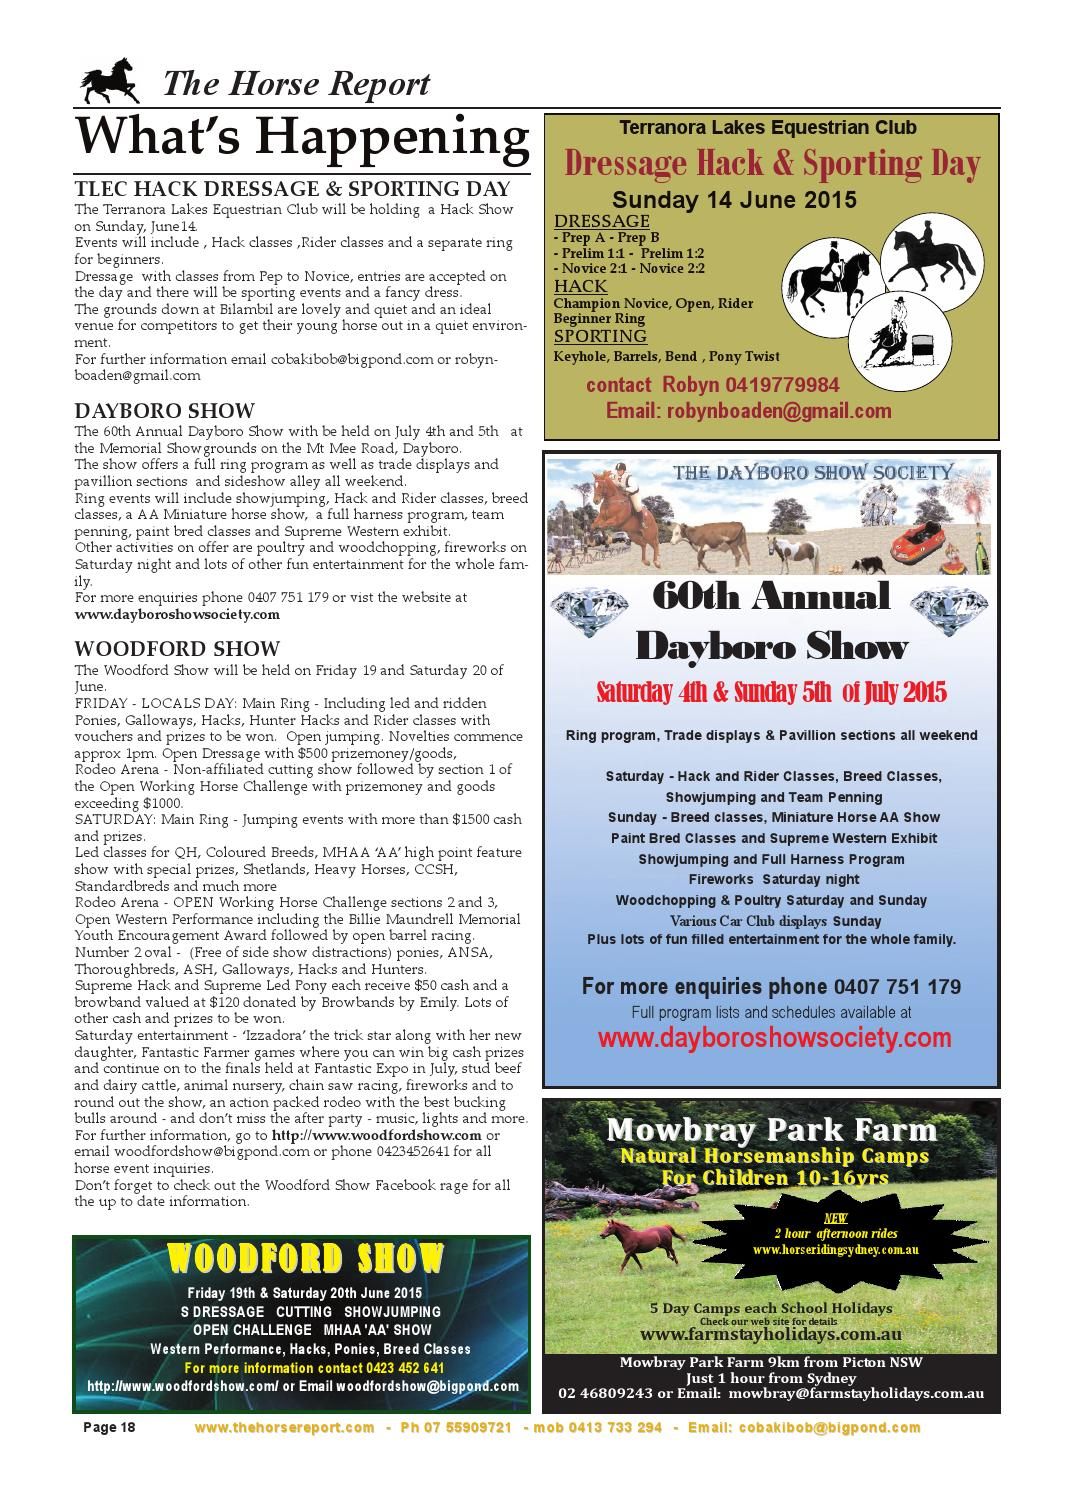 Horse report june 2015 by the horse report - issuu